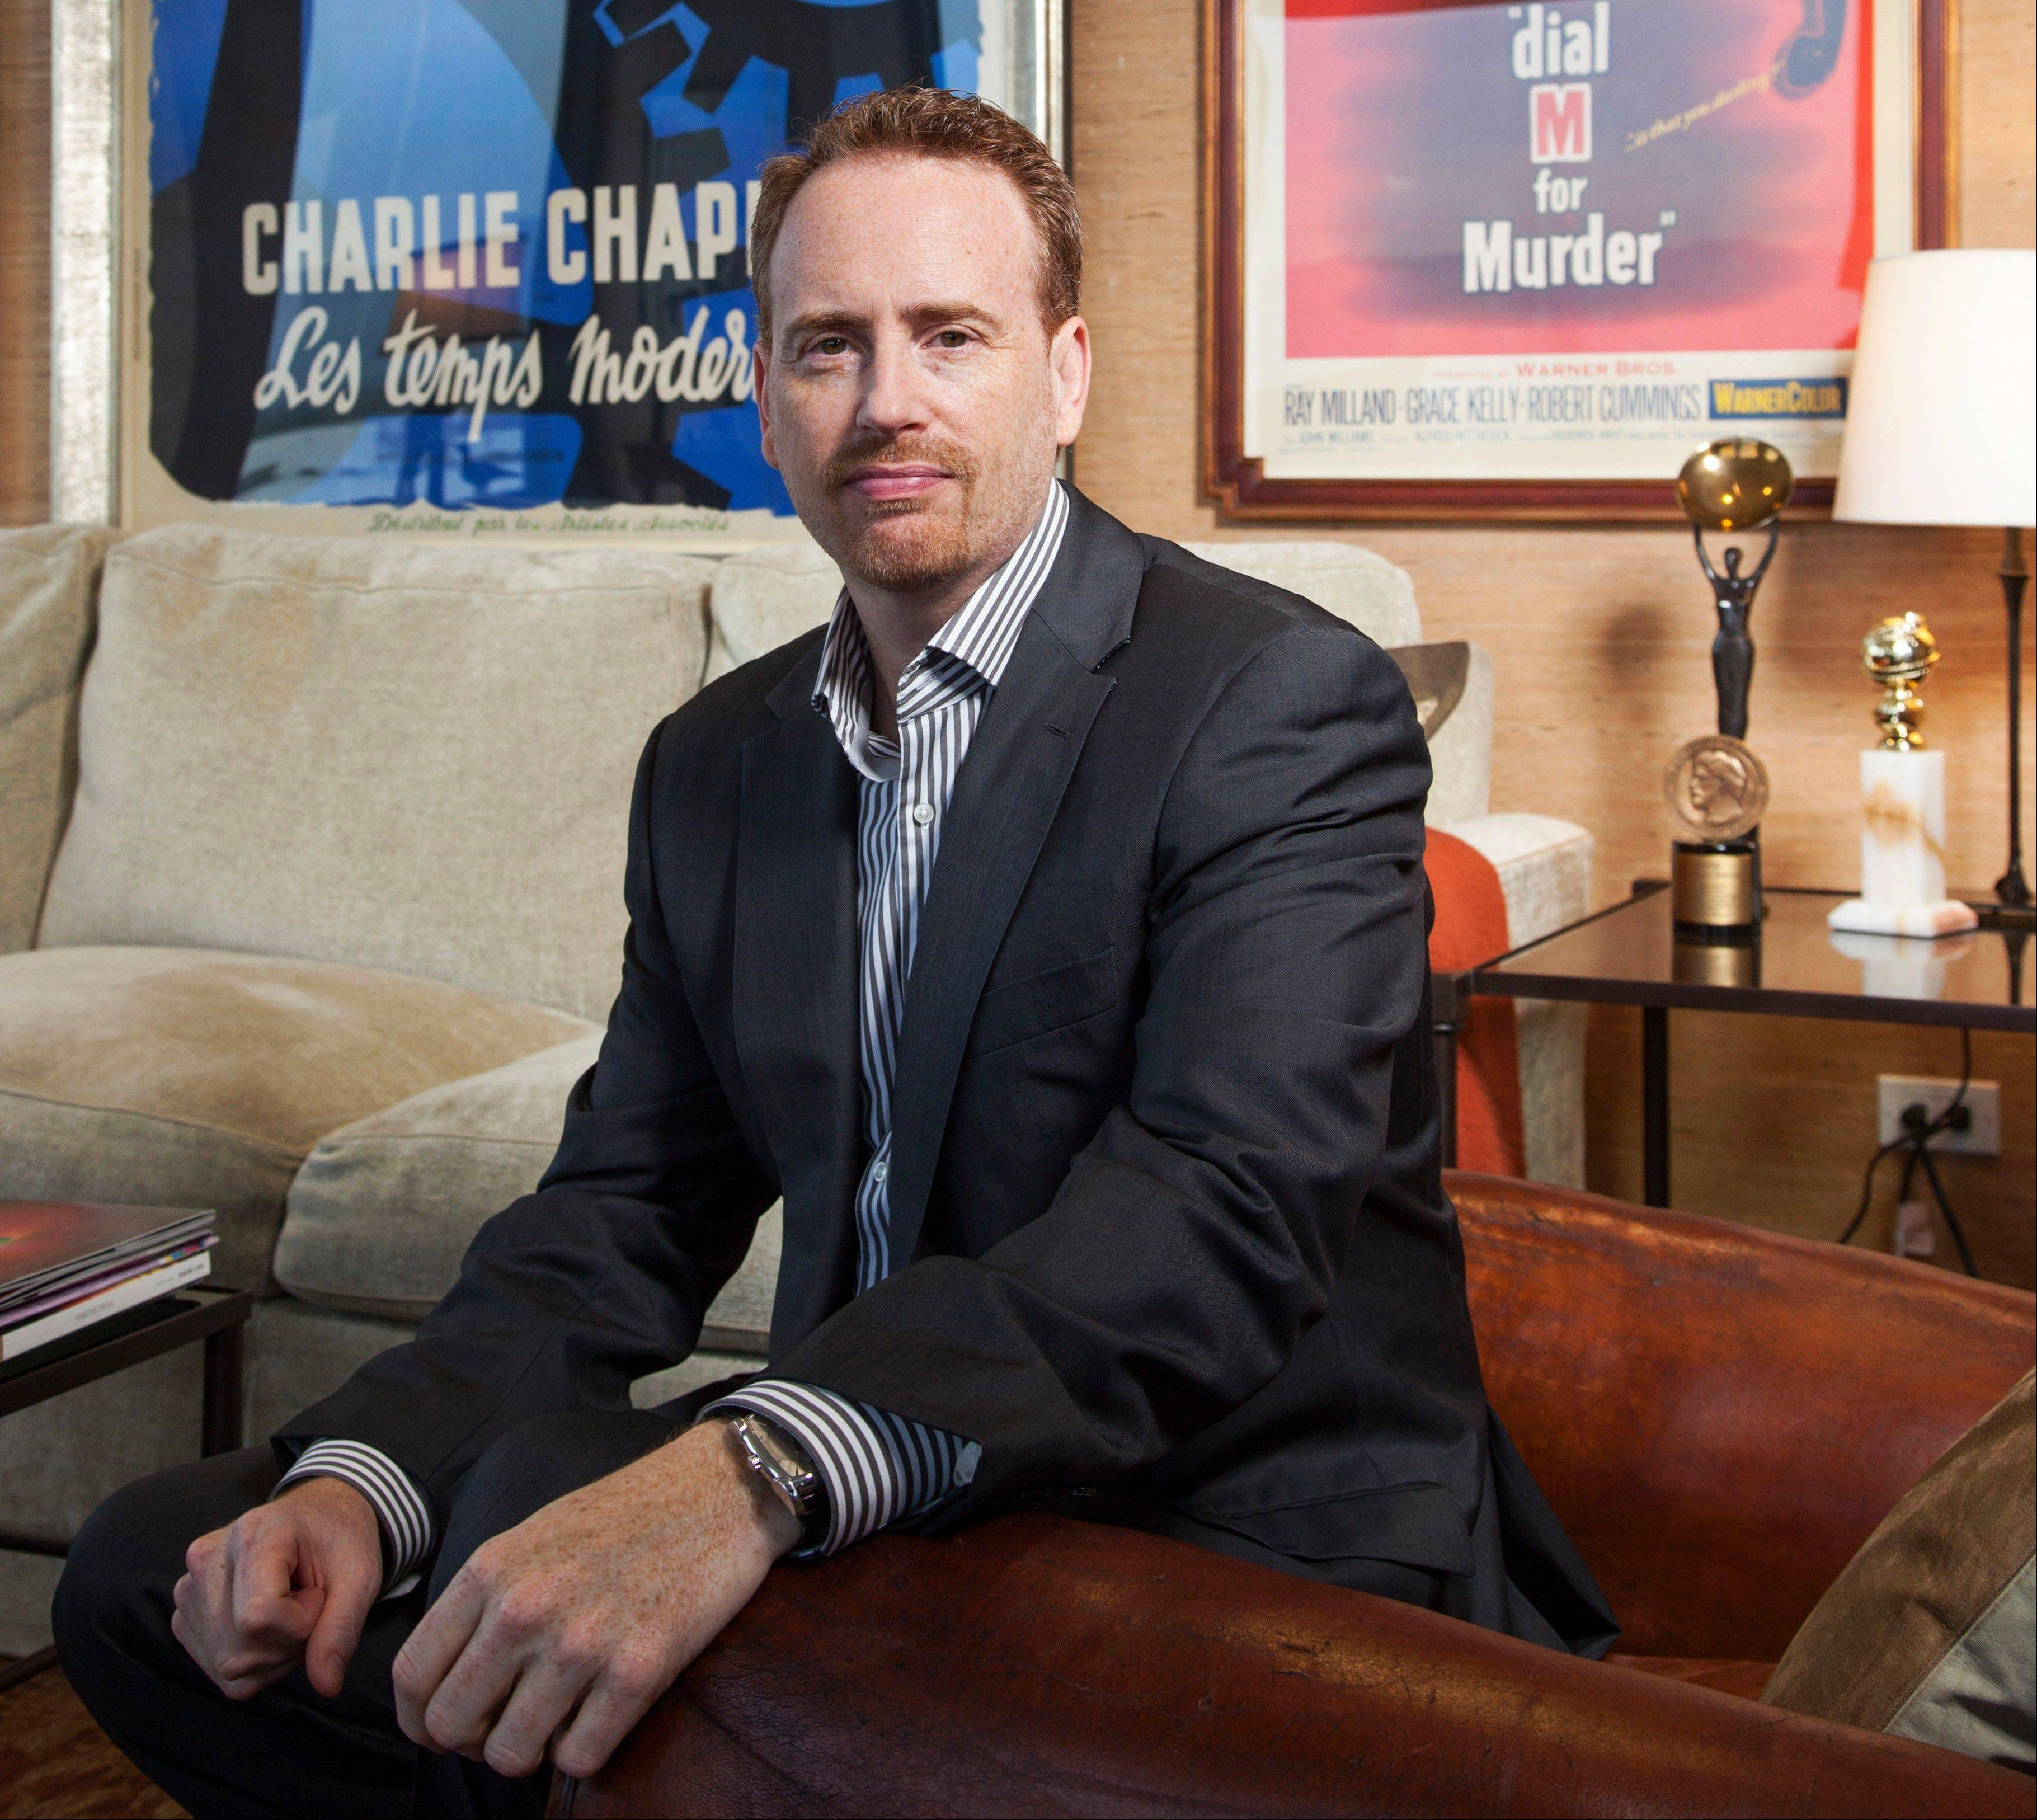 NBC Entertainment Chairman Robert Greenblatt can bask in the glow of his network's win in the November ratings sweeps. It was NBC's first such victory in the 18-to-49 demo since 2003, vaulting from fourth place to first after being largely moribund in prime time for a decade.